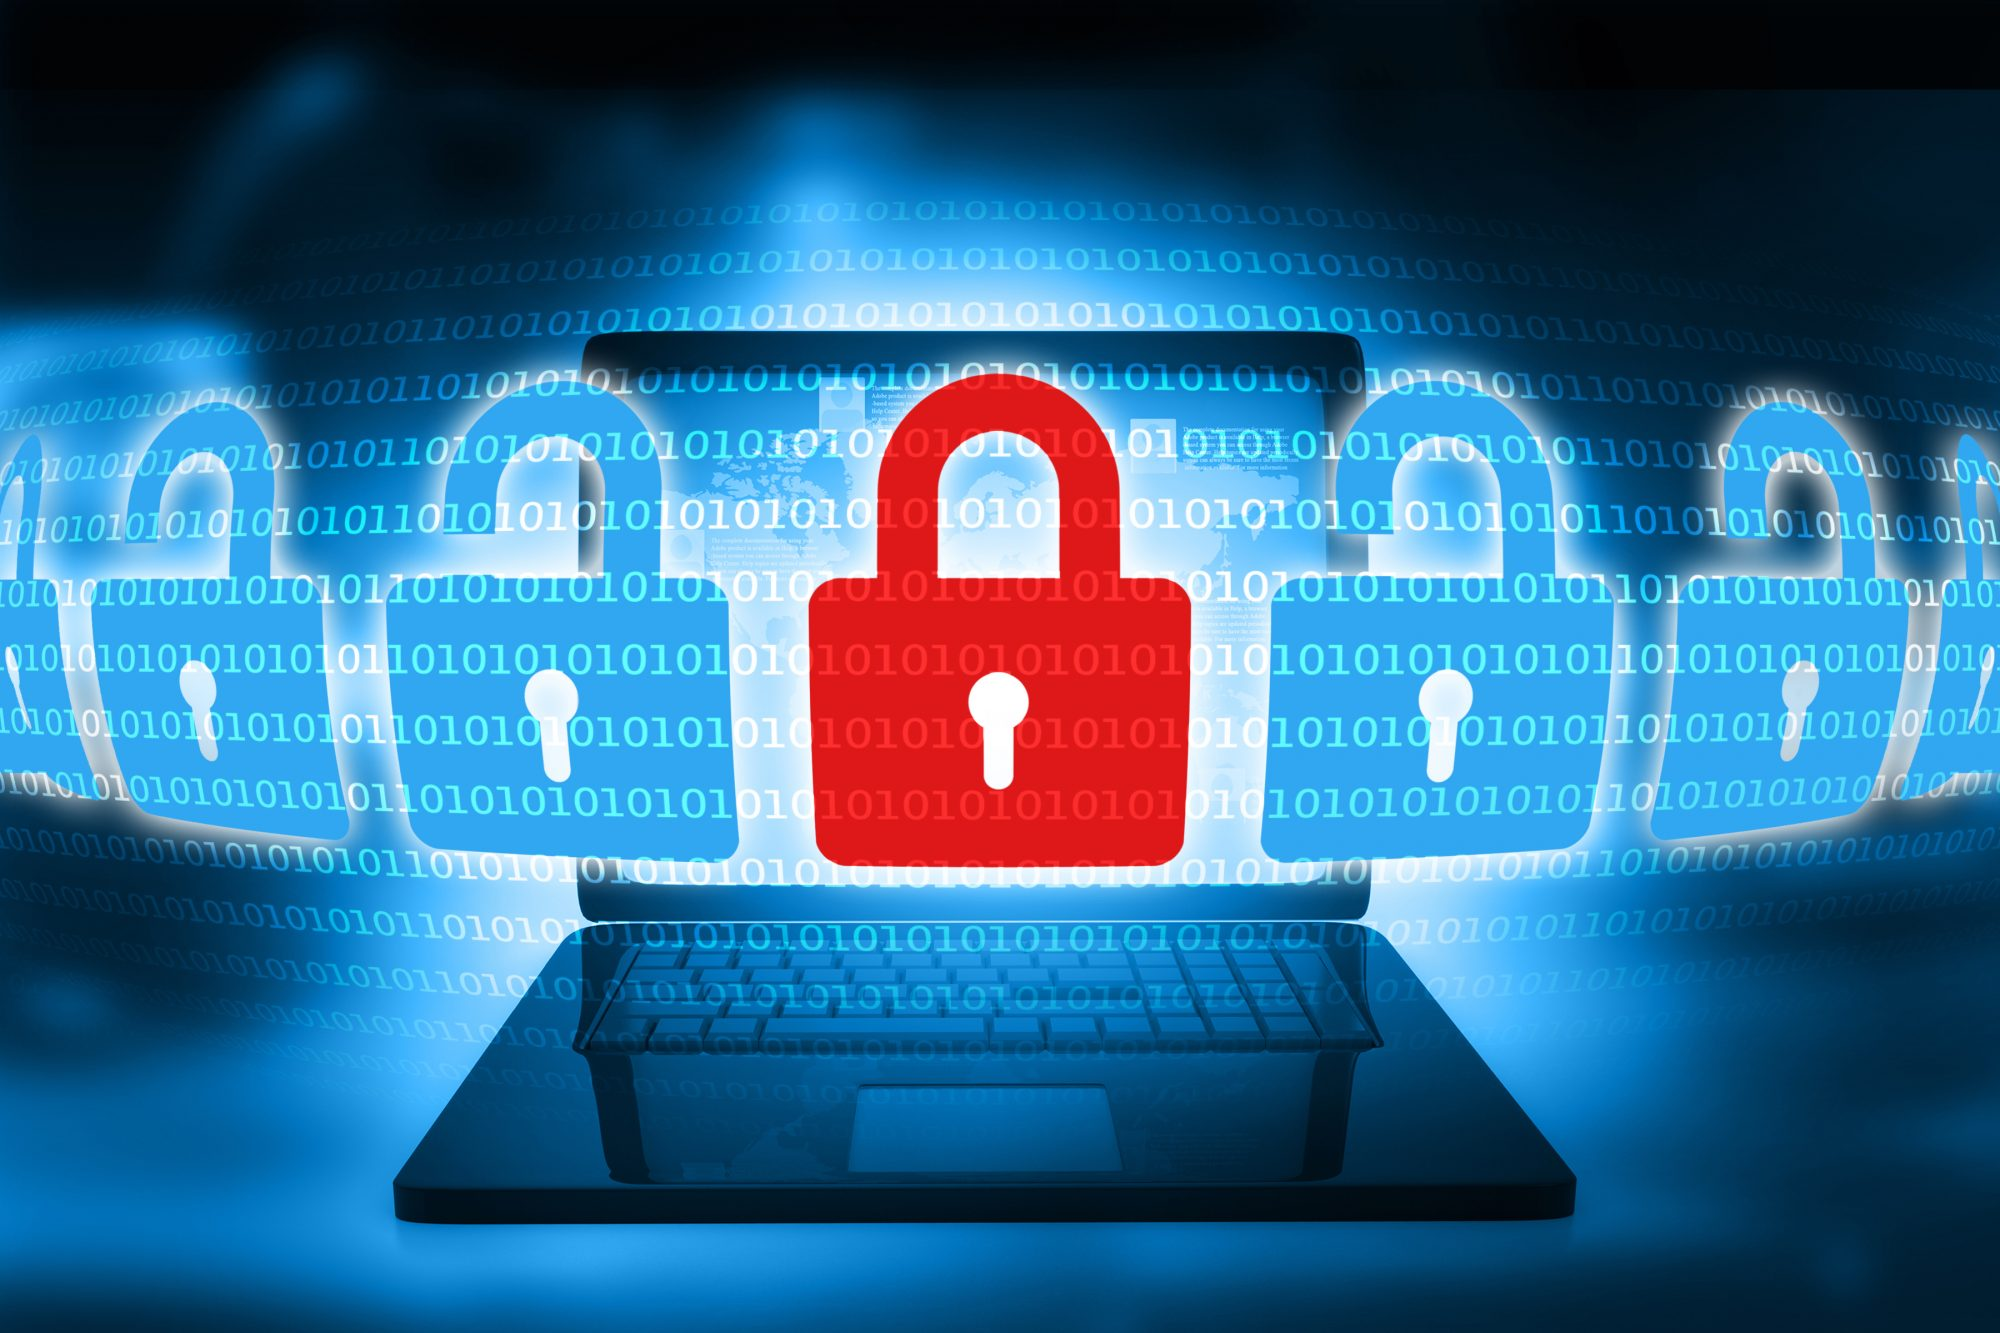 Cyber Insurance Compliance Insights: Secure paper, physical media, and devices